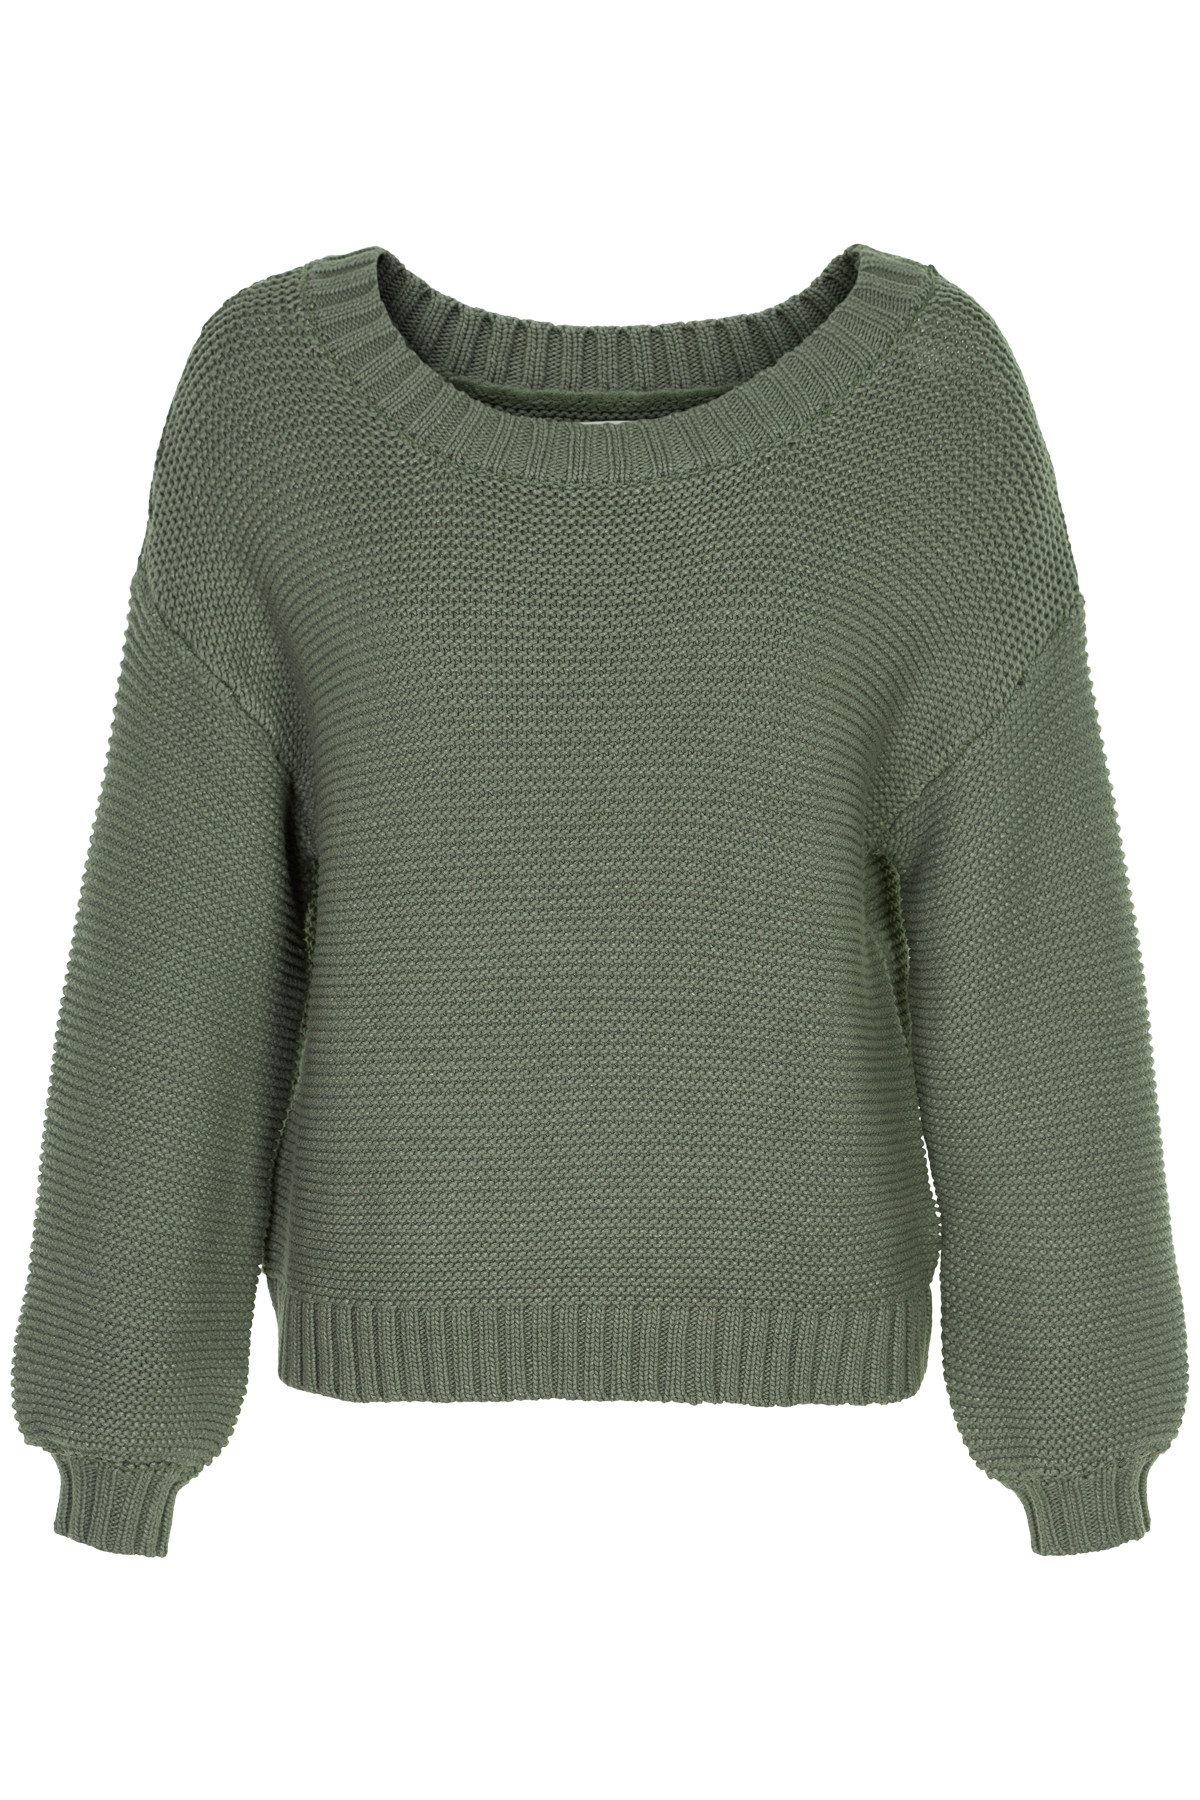 Image of   AND LESS RAIMONDO PULLOVER 5219206 (Castor Green, M)